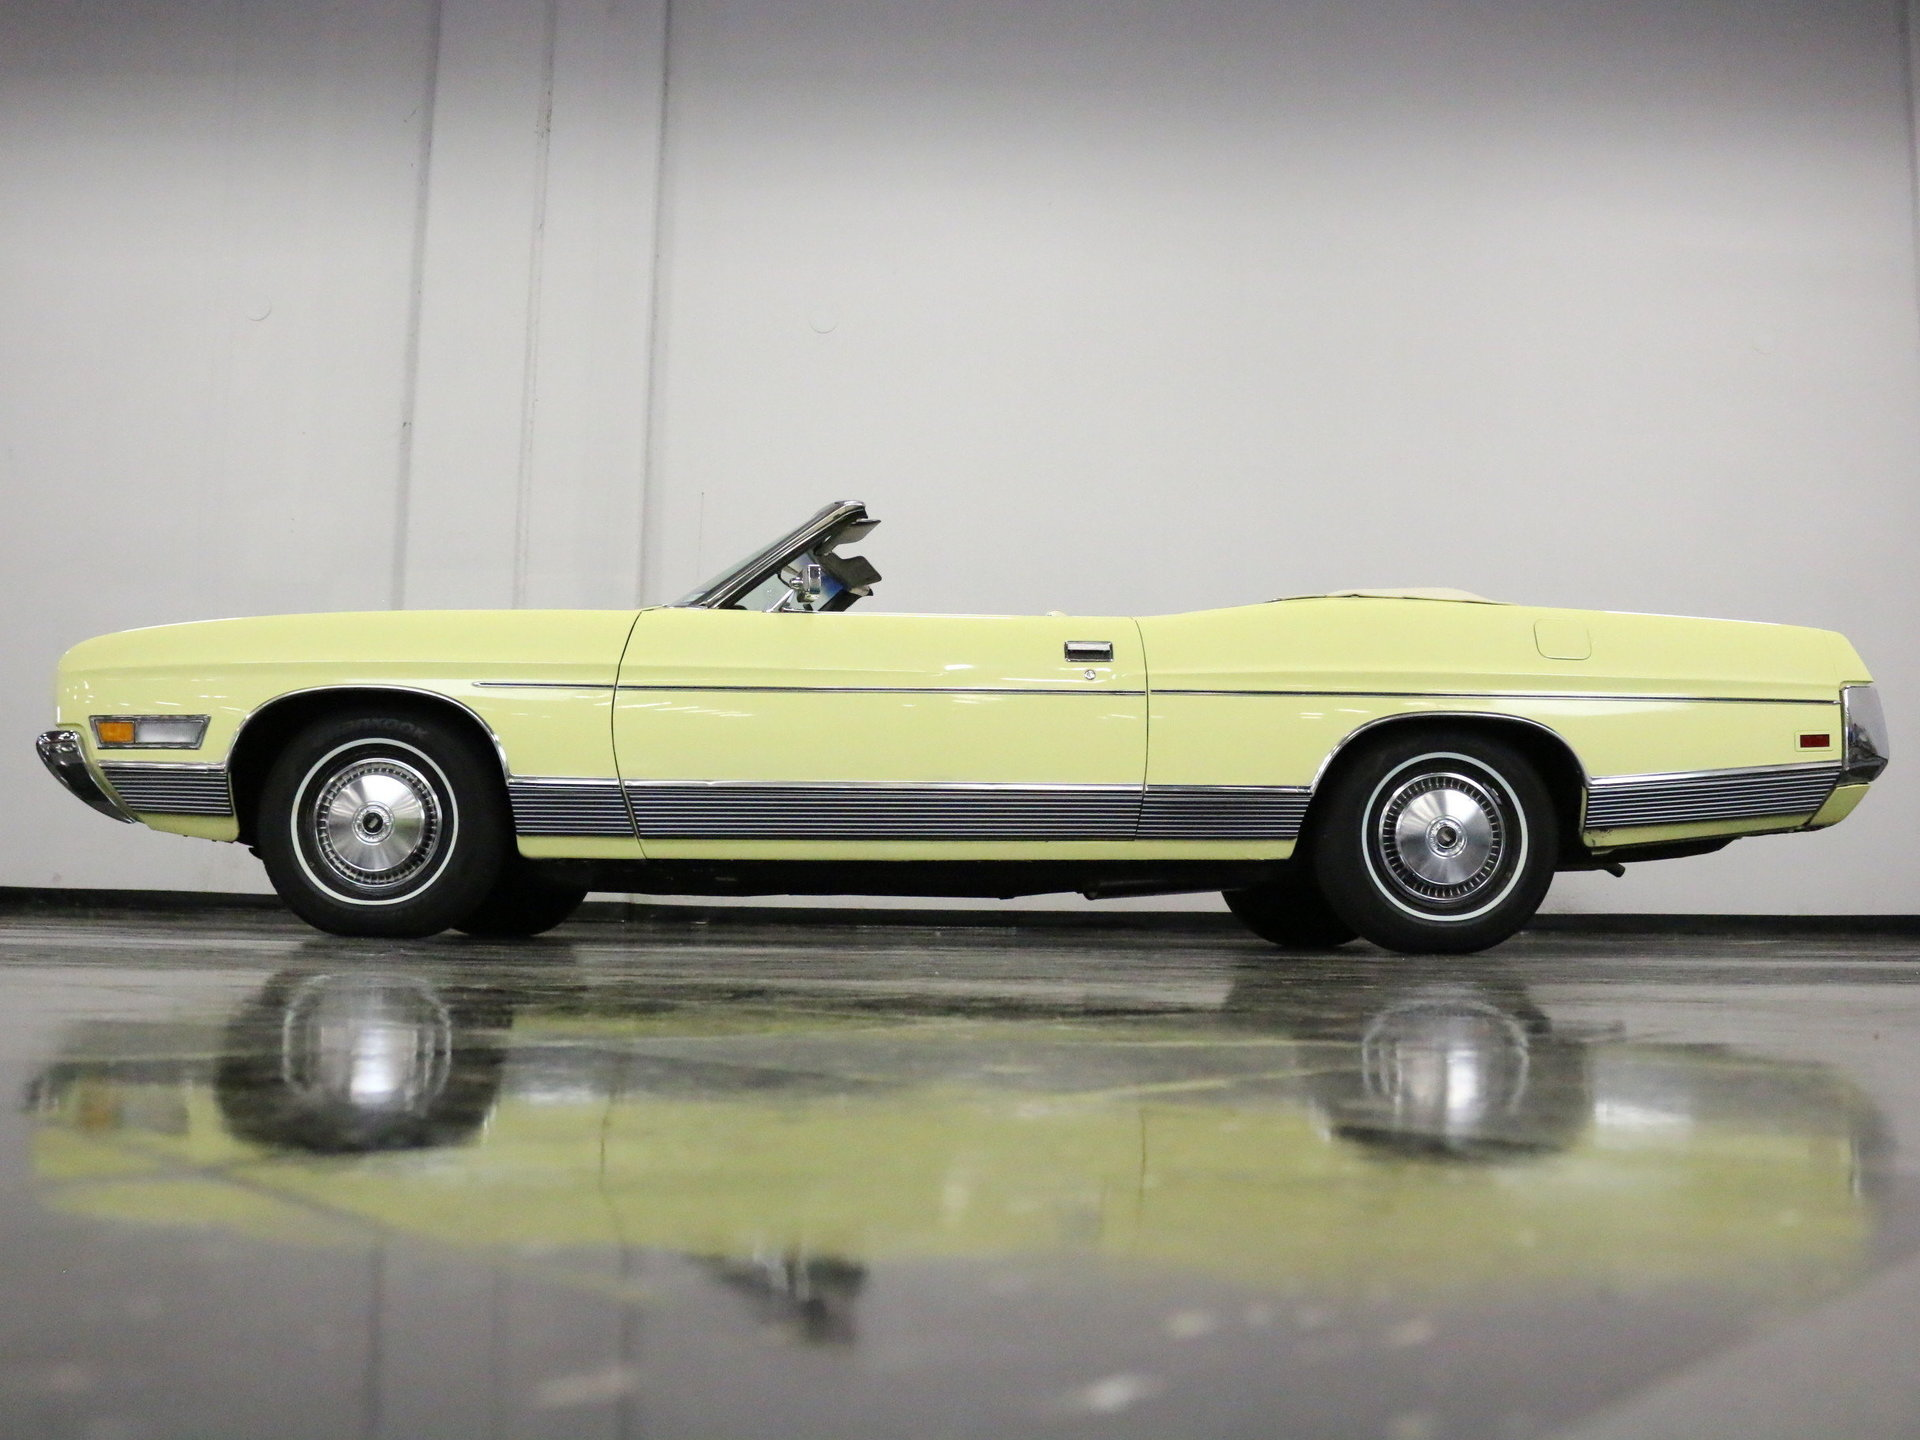 1972 Ford Ltd Streetside Classics The Nations Trusted Classic 1964 Convertible View 360